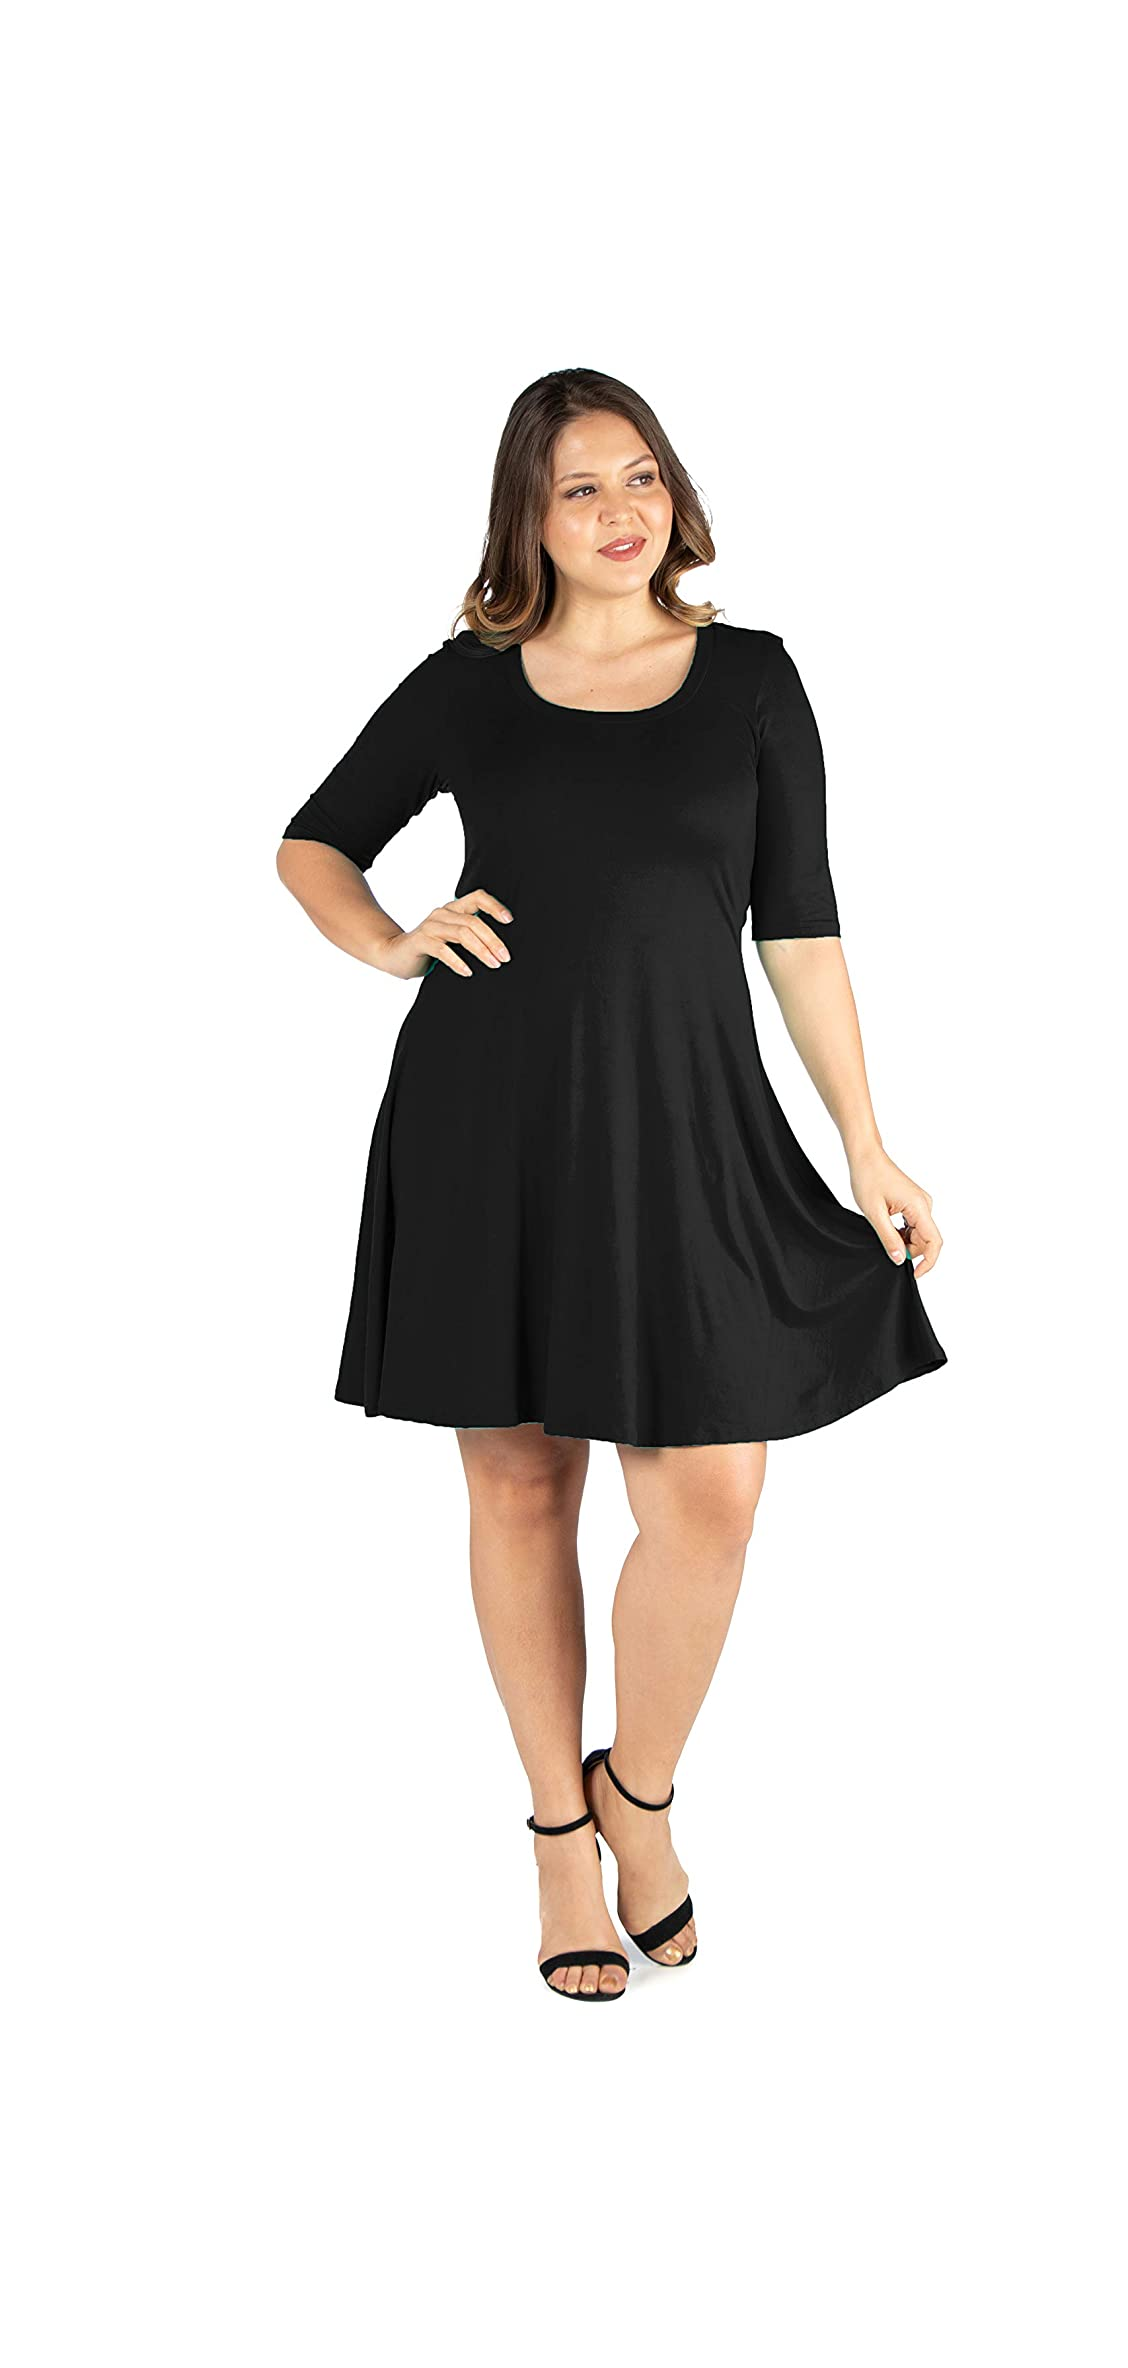 Seven Comfort Appare Elbow Sleeve Plus Size Knee Length Dress